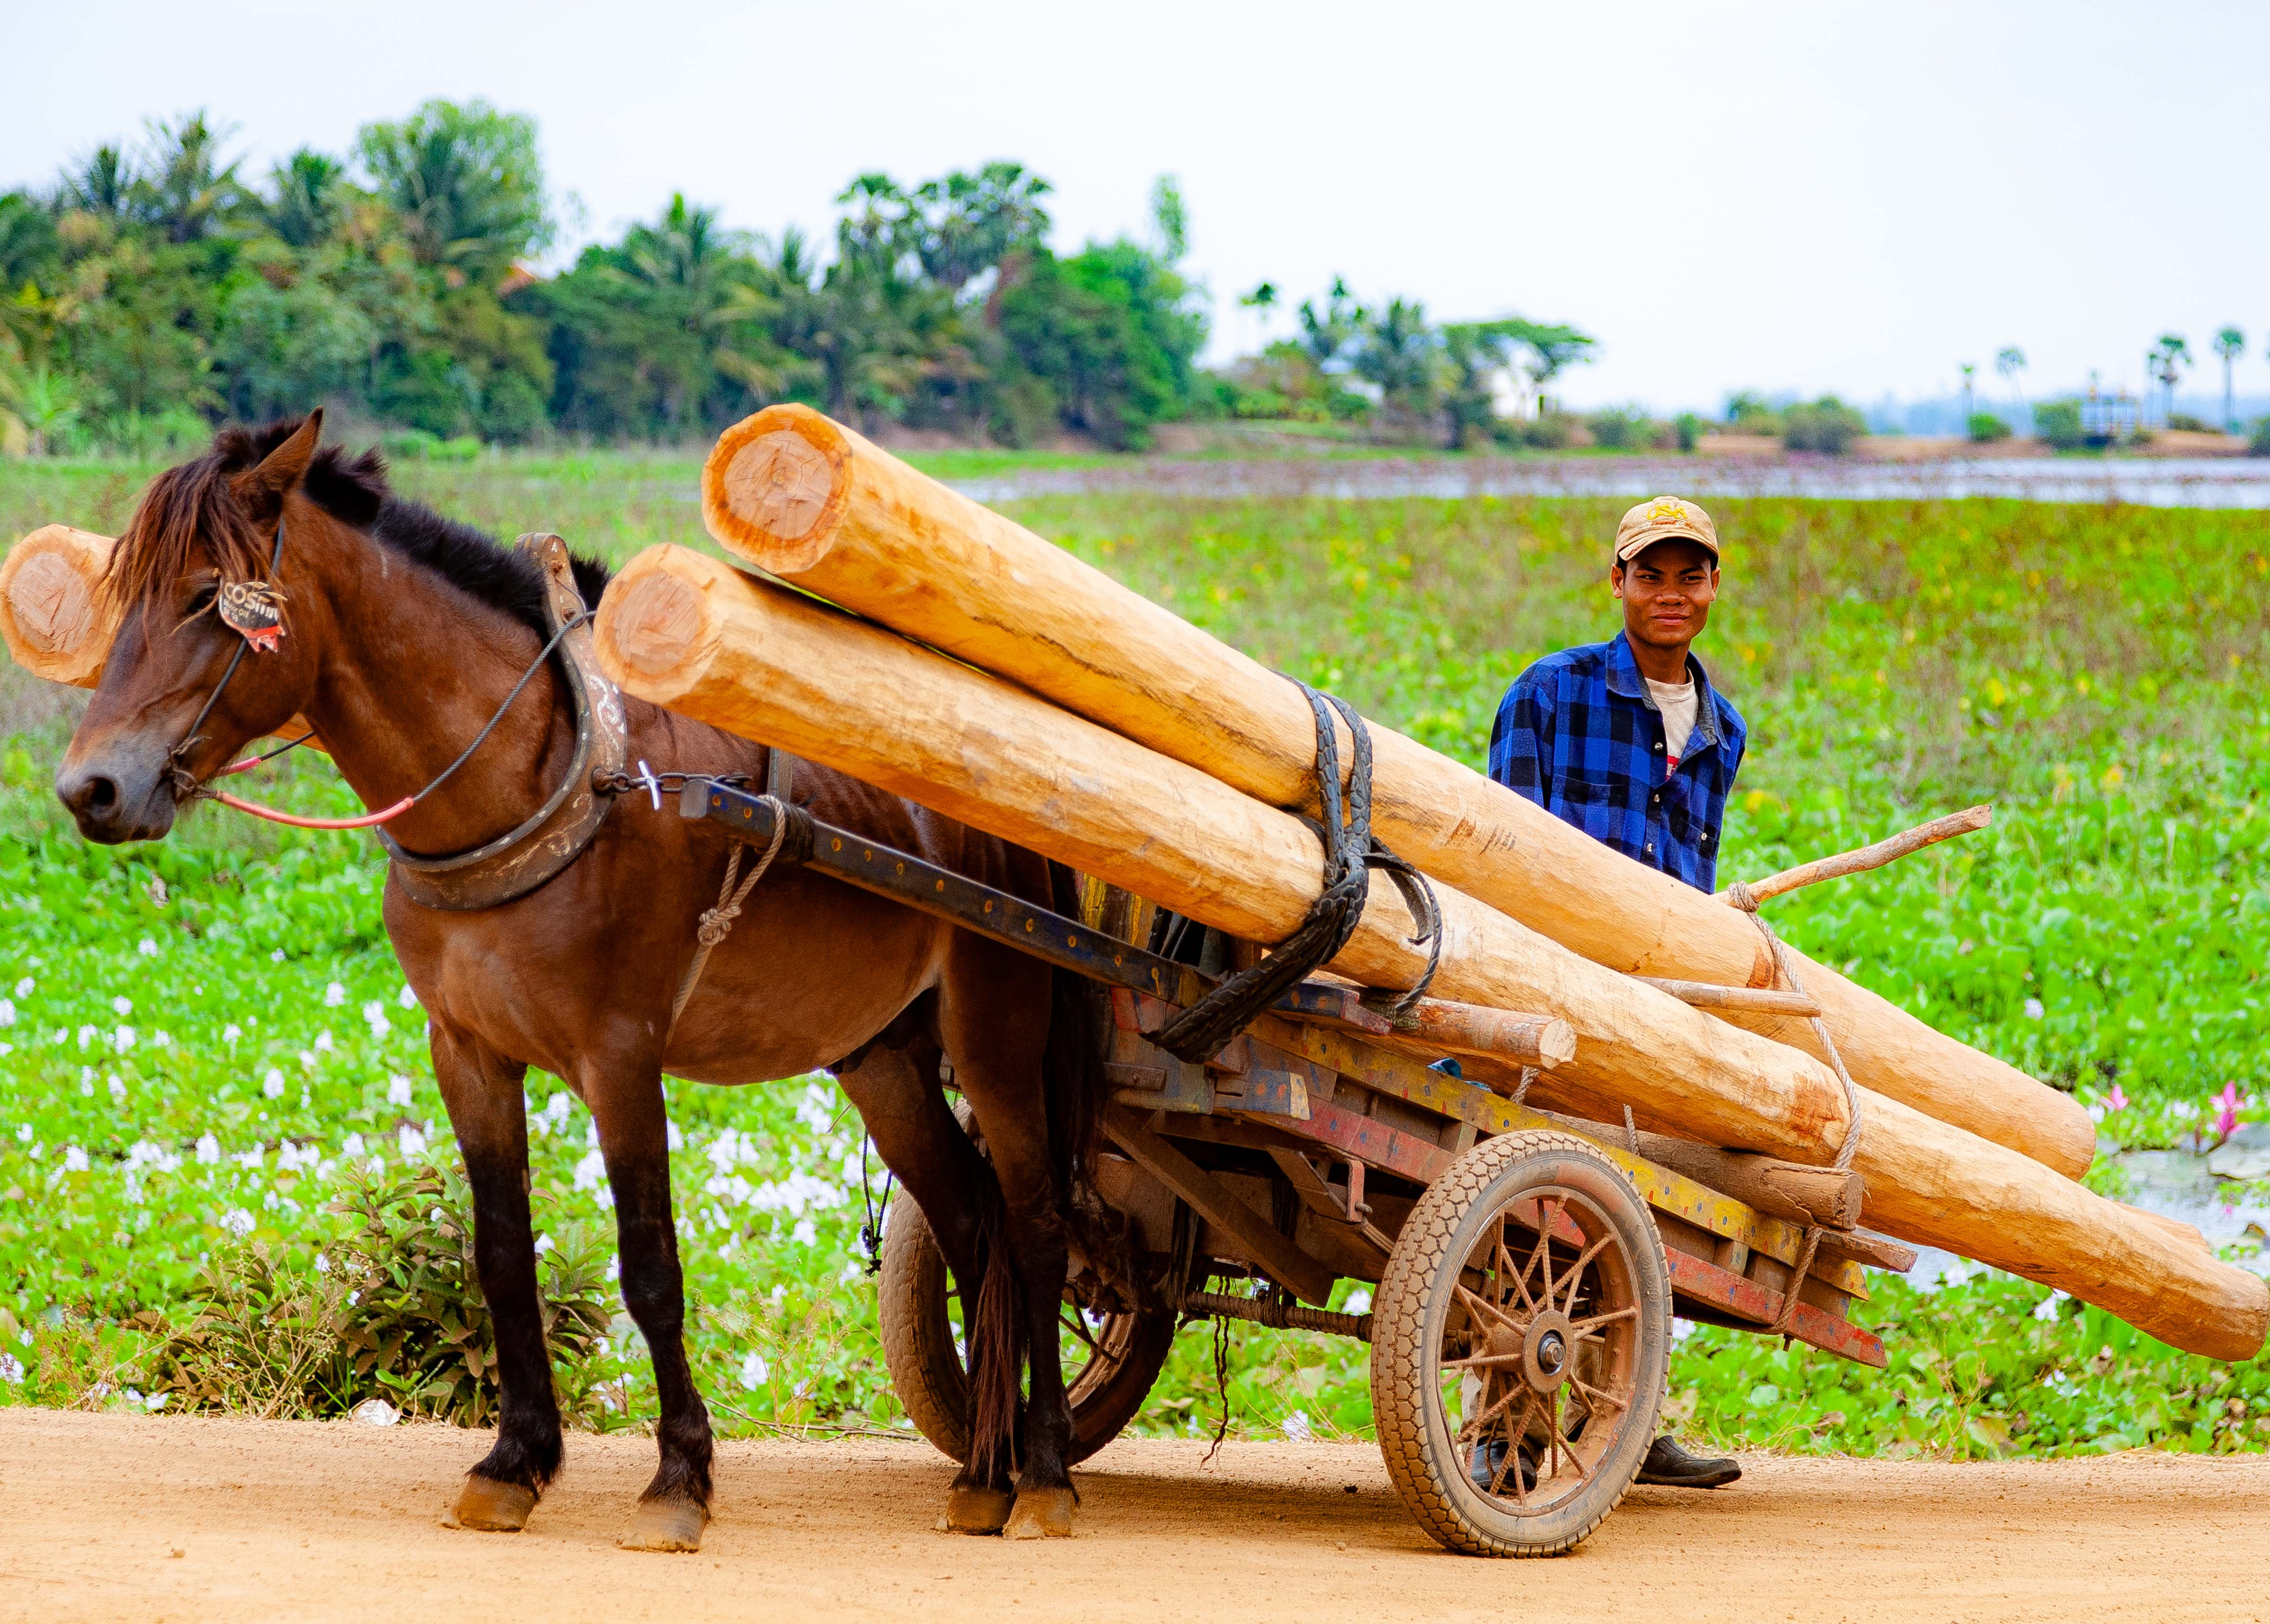 Cambodia, Kampong Chaam Prov, Horse Logging, 2010, IMG 5434